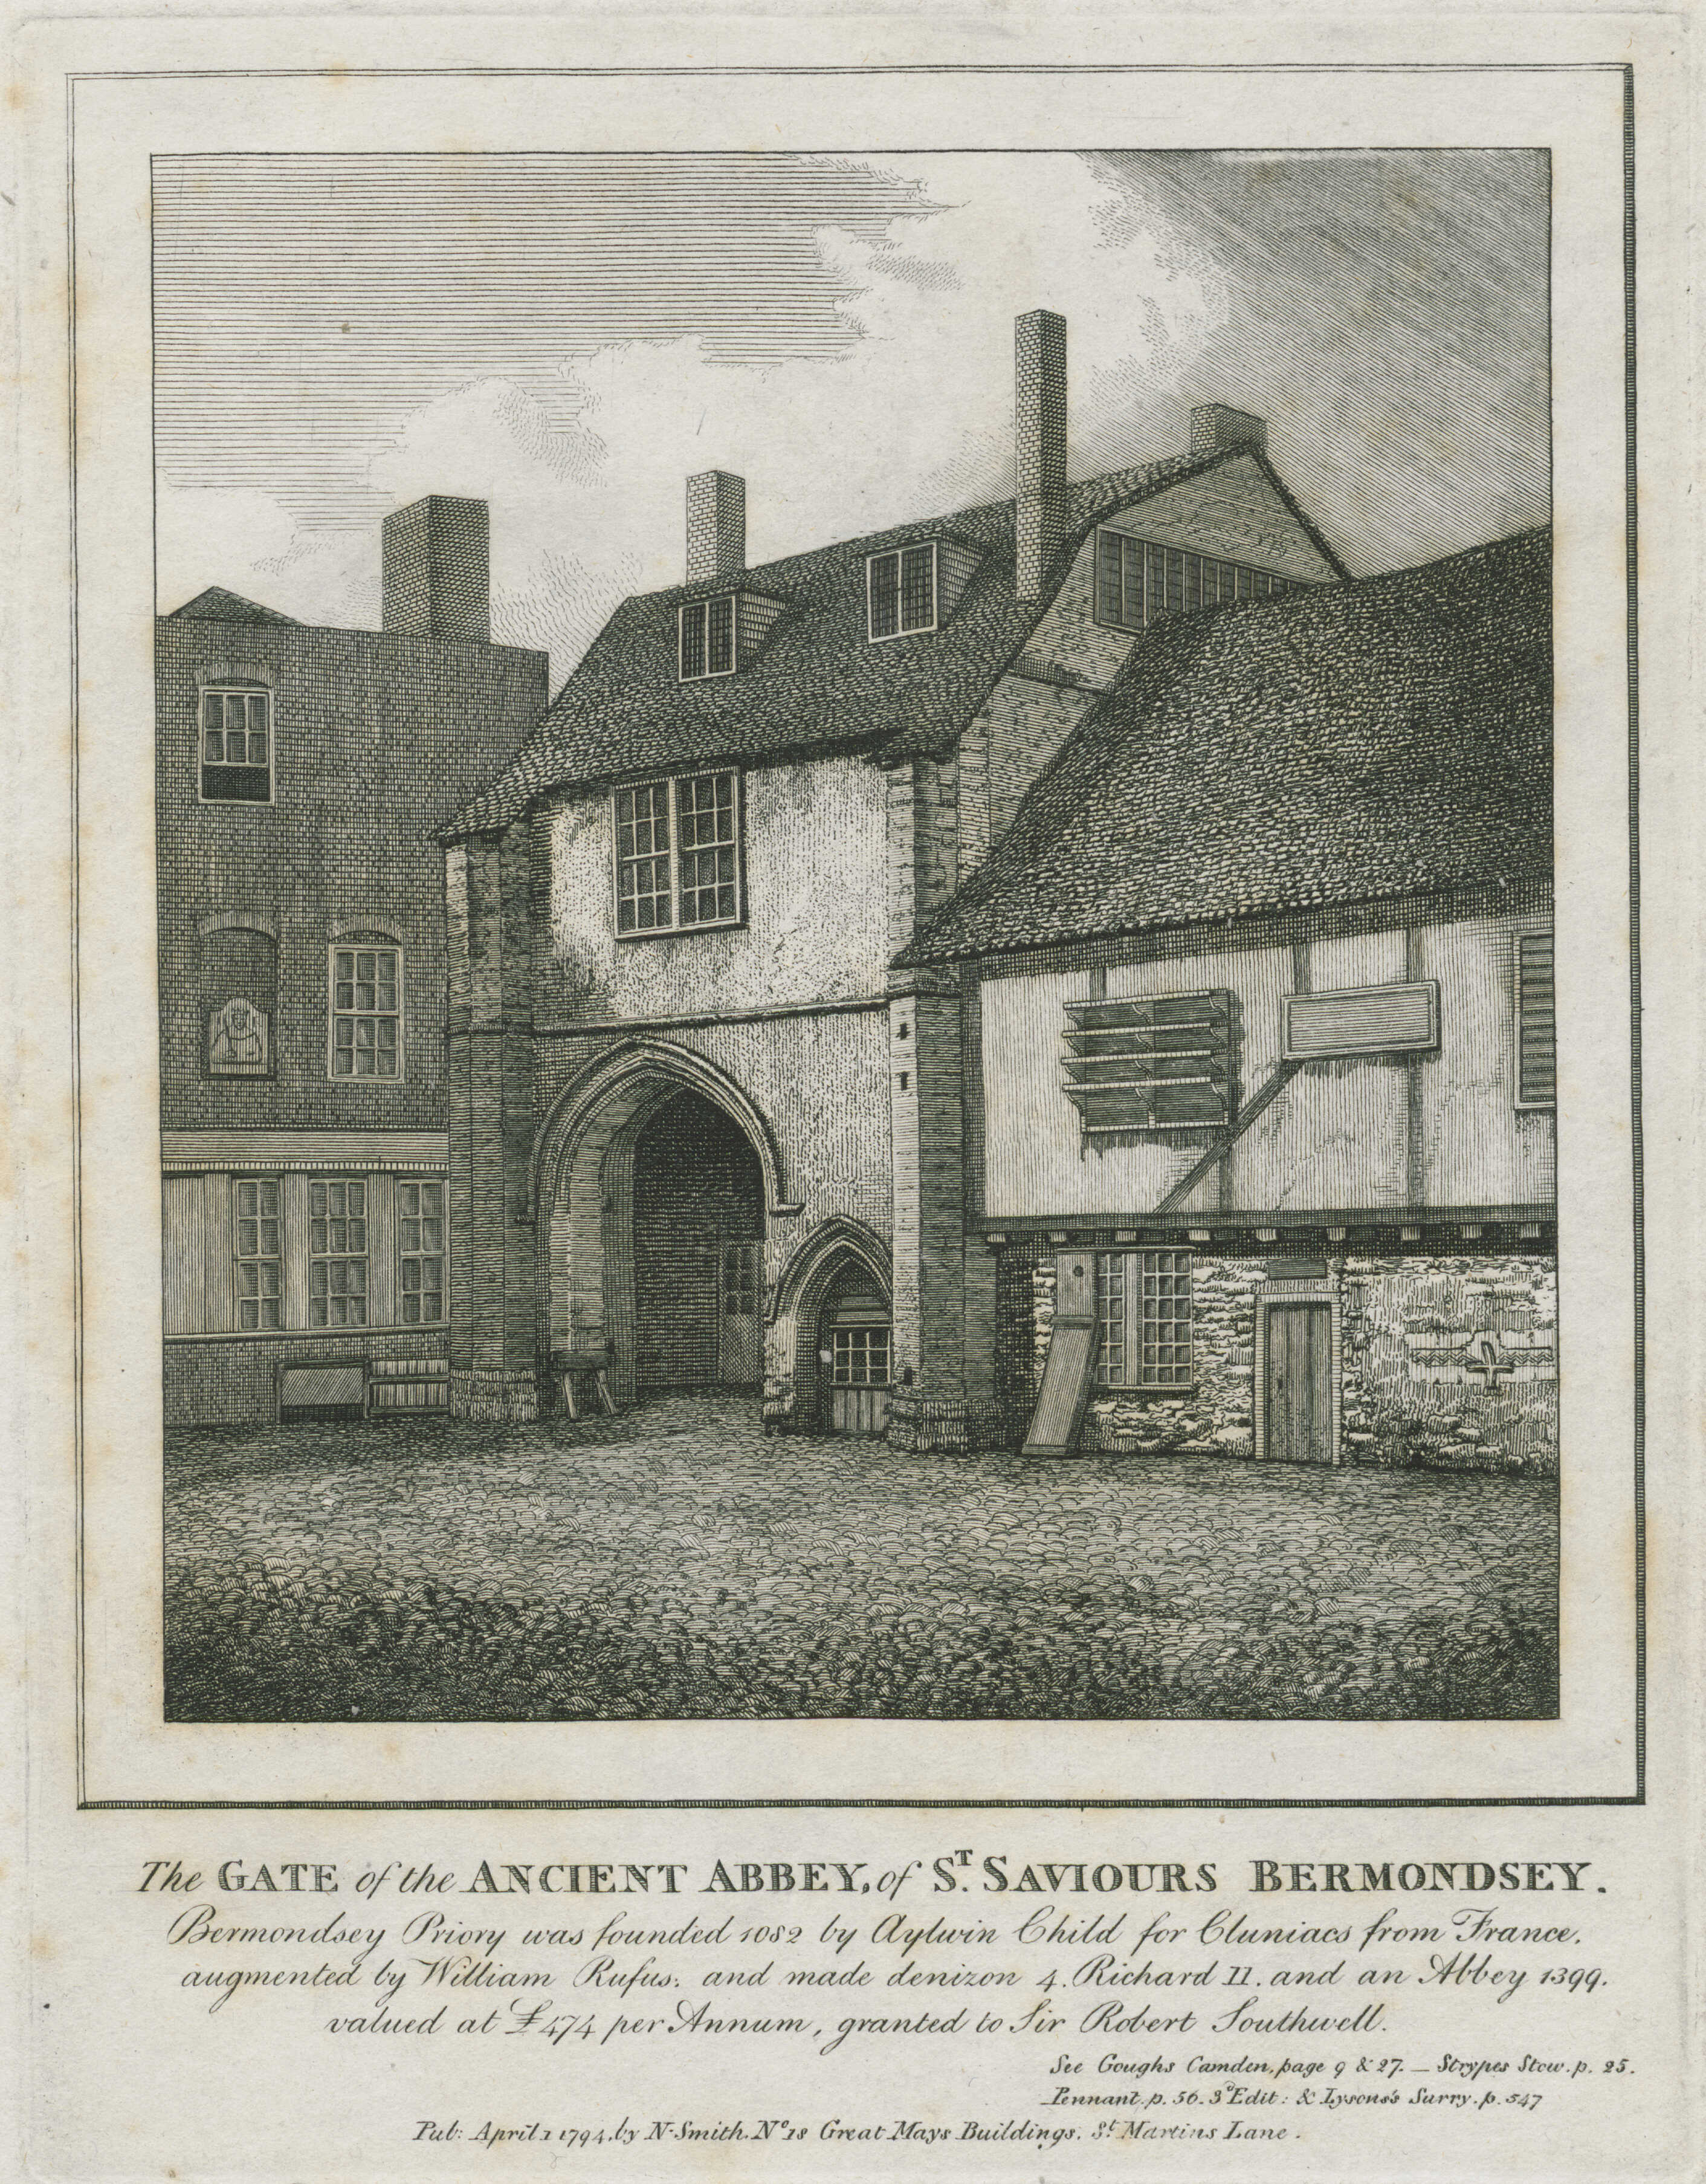 49-the-gate-of-the-ancient-abbey-of-st-saviours-bermondsey